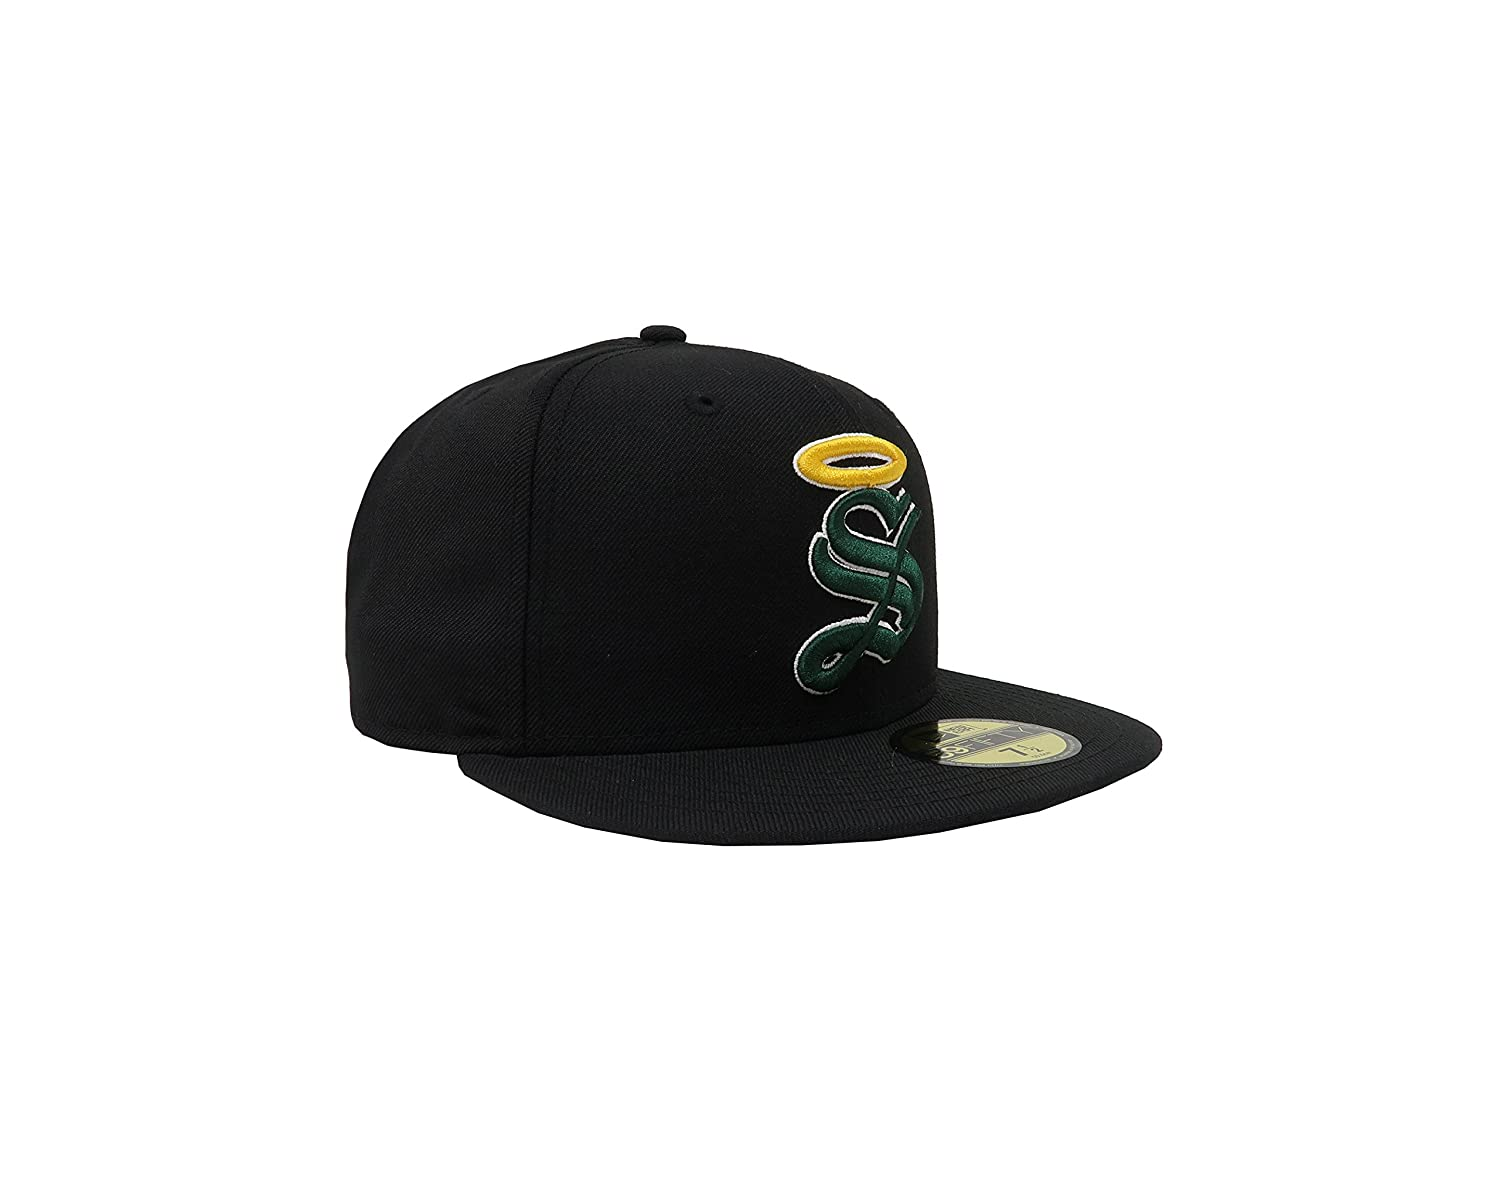 Amazon.com: New Era 59Fifty Hat Santos Laguna Soccer Club Mexican League Black Headwear Cap: Clothing